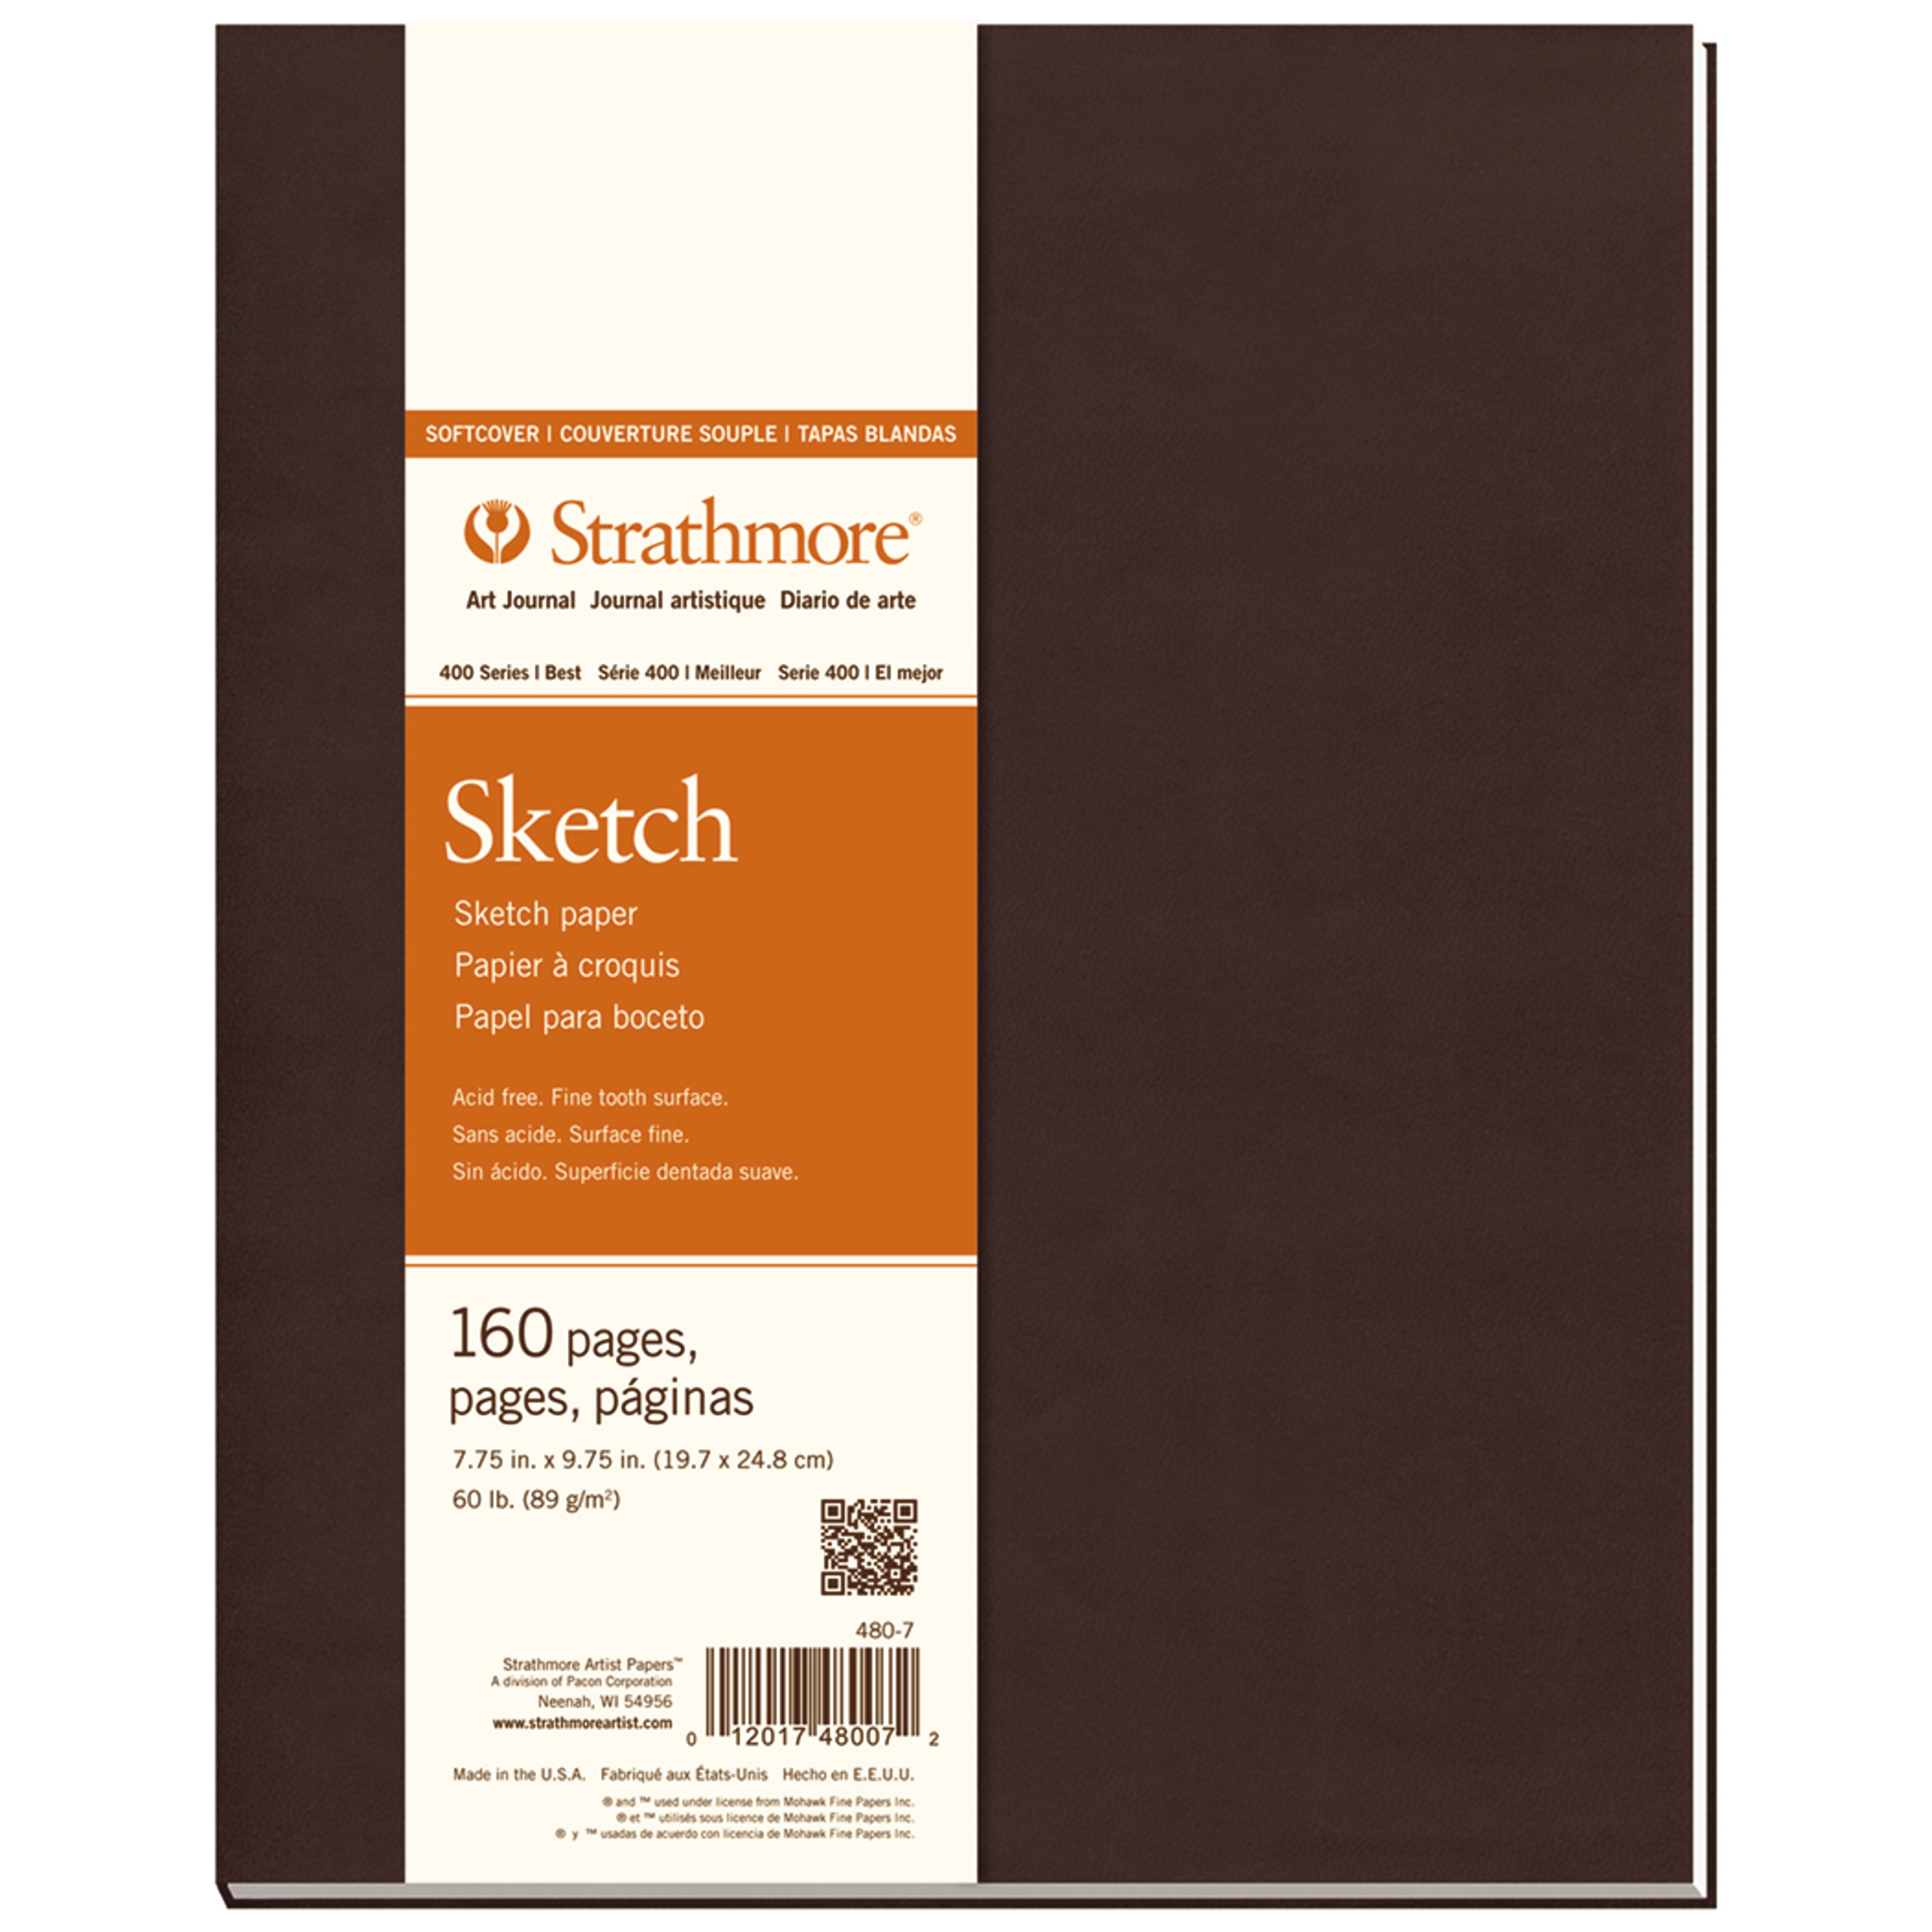 "Strathmore Soft Cover Sketch Art Journal, 400 Series, 160 pages, 7.75"" x 9.75"""